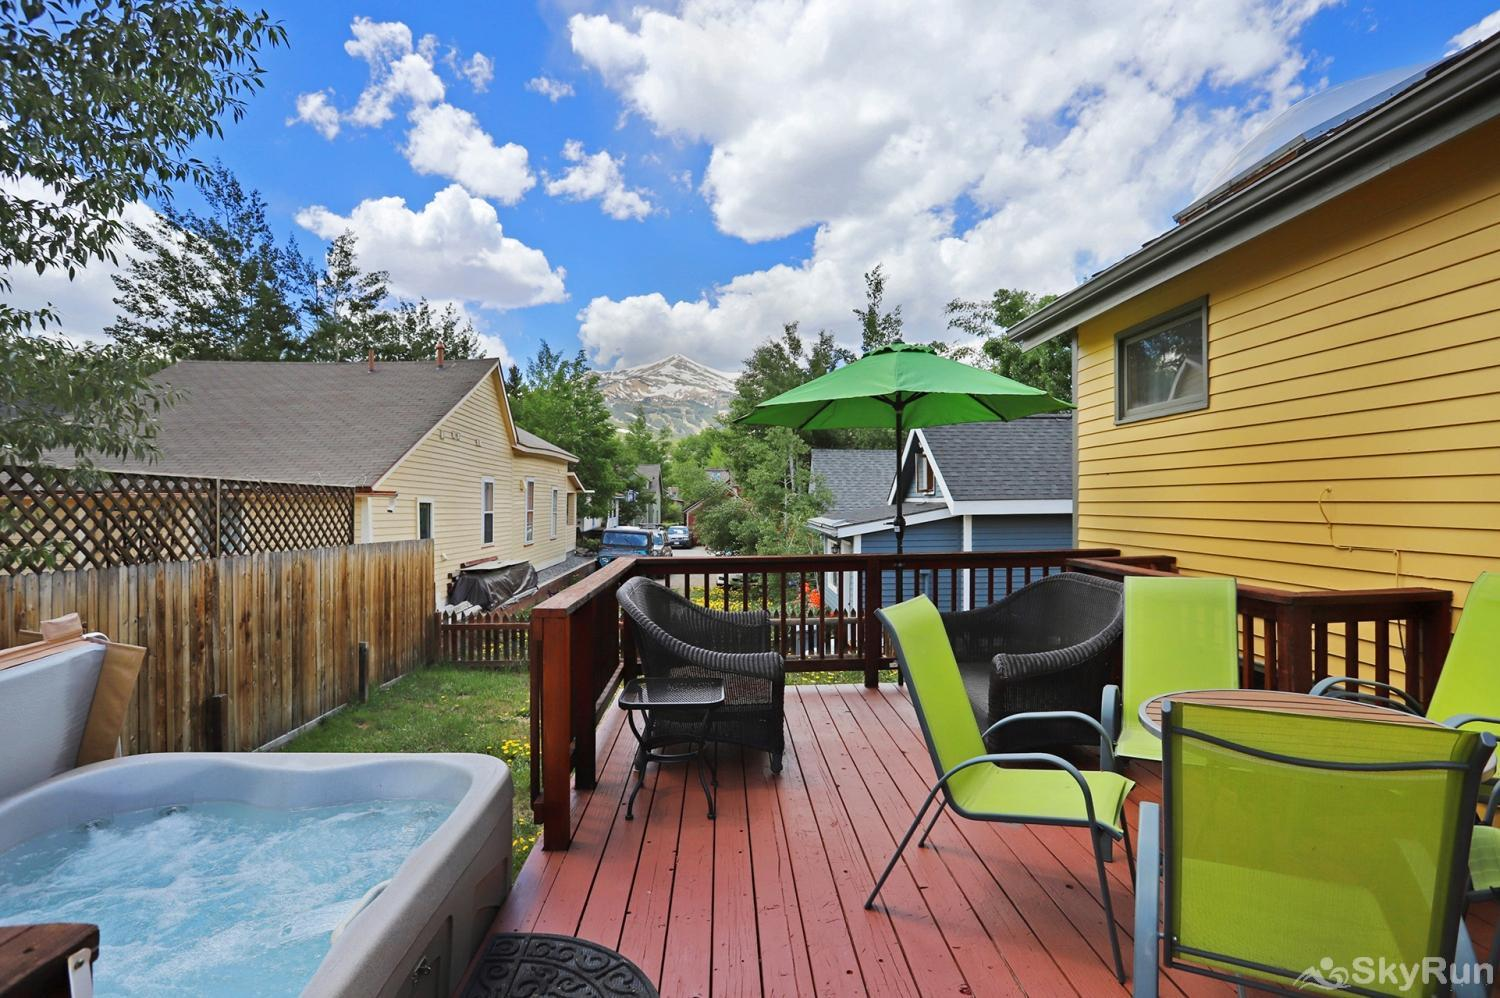 Imperial View Cottage Relax and unwind in your private outdoor hot tub